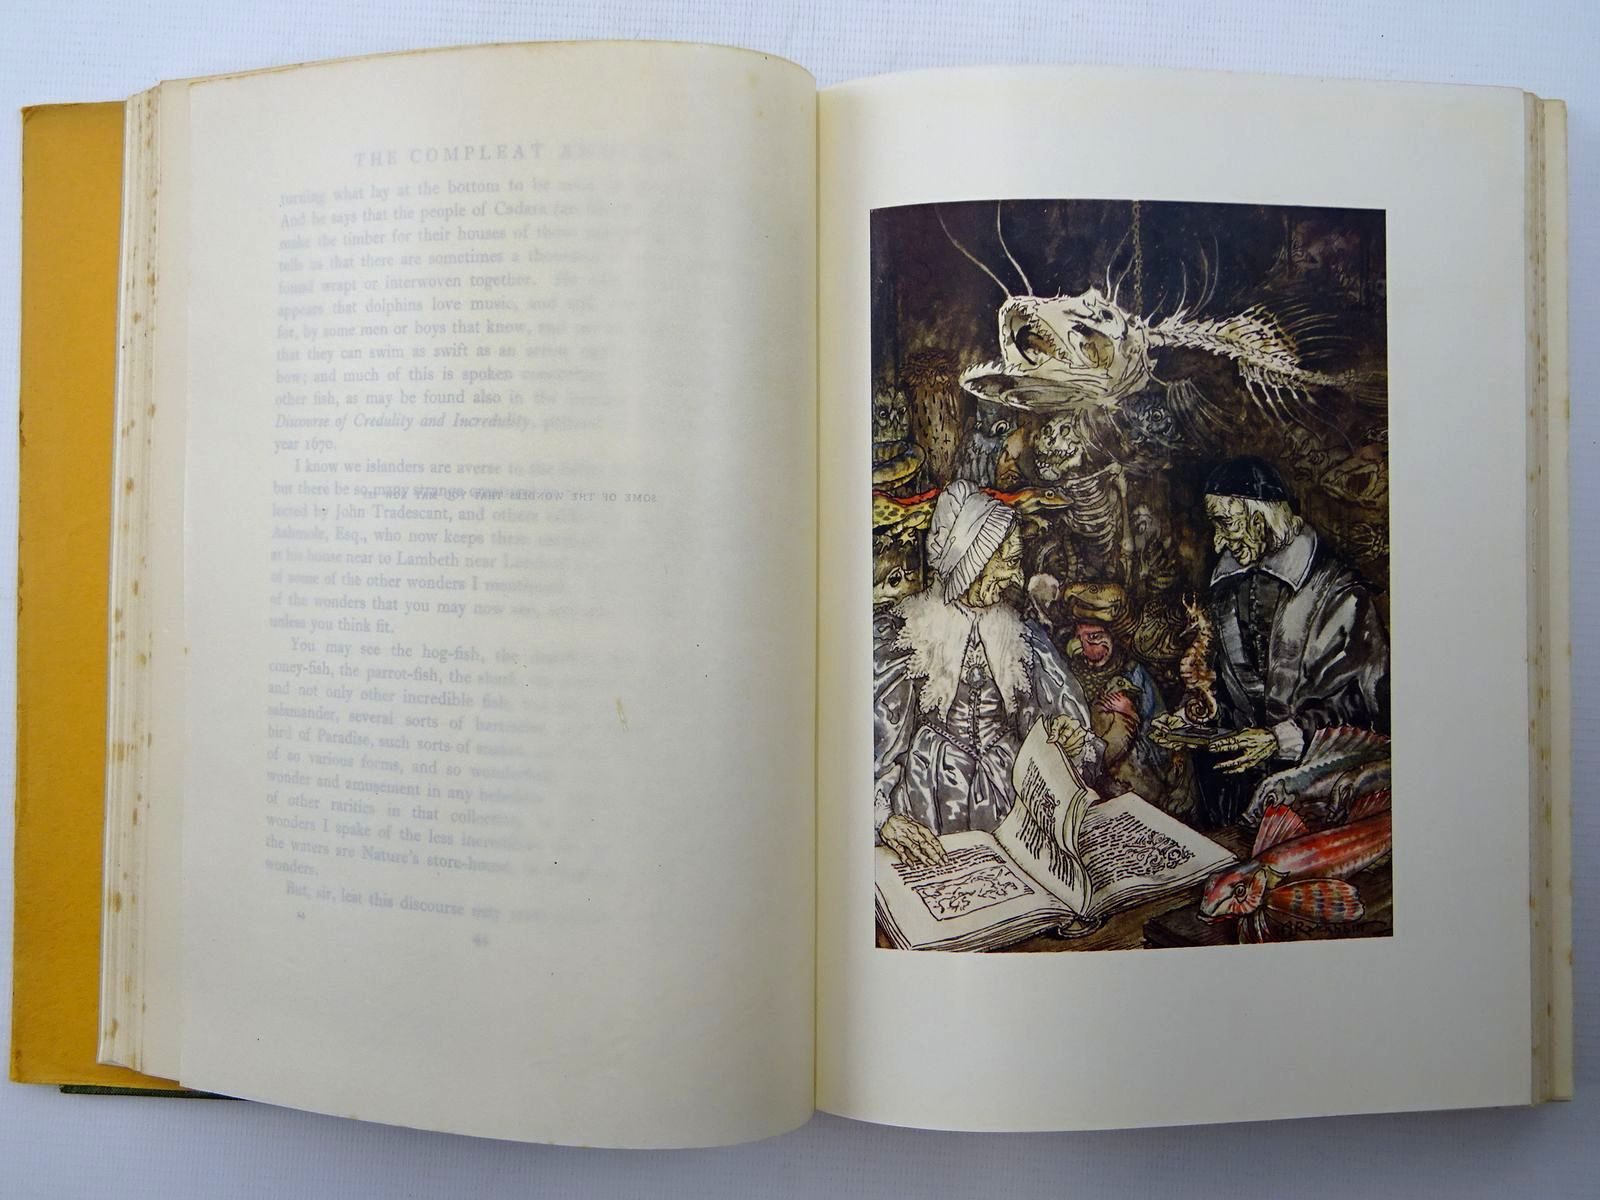 Photo of THE COMPLEAT ANGLER written by Walton, Izaak illustrated by Rackham, Arthur published by George G. Harrap & Co. Ltd. (STOCK CODE: 2124953)  for sale by Stella & Rose's Books